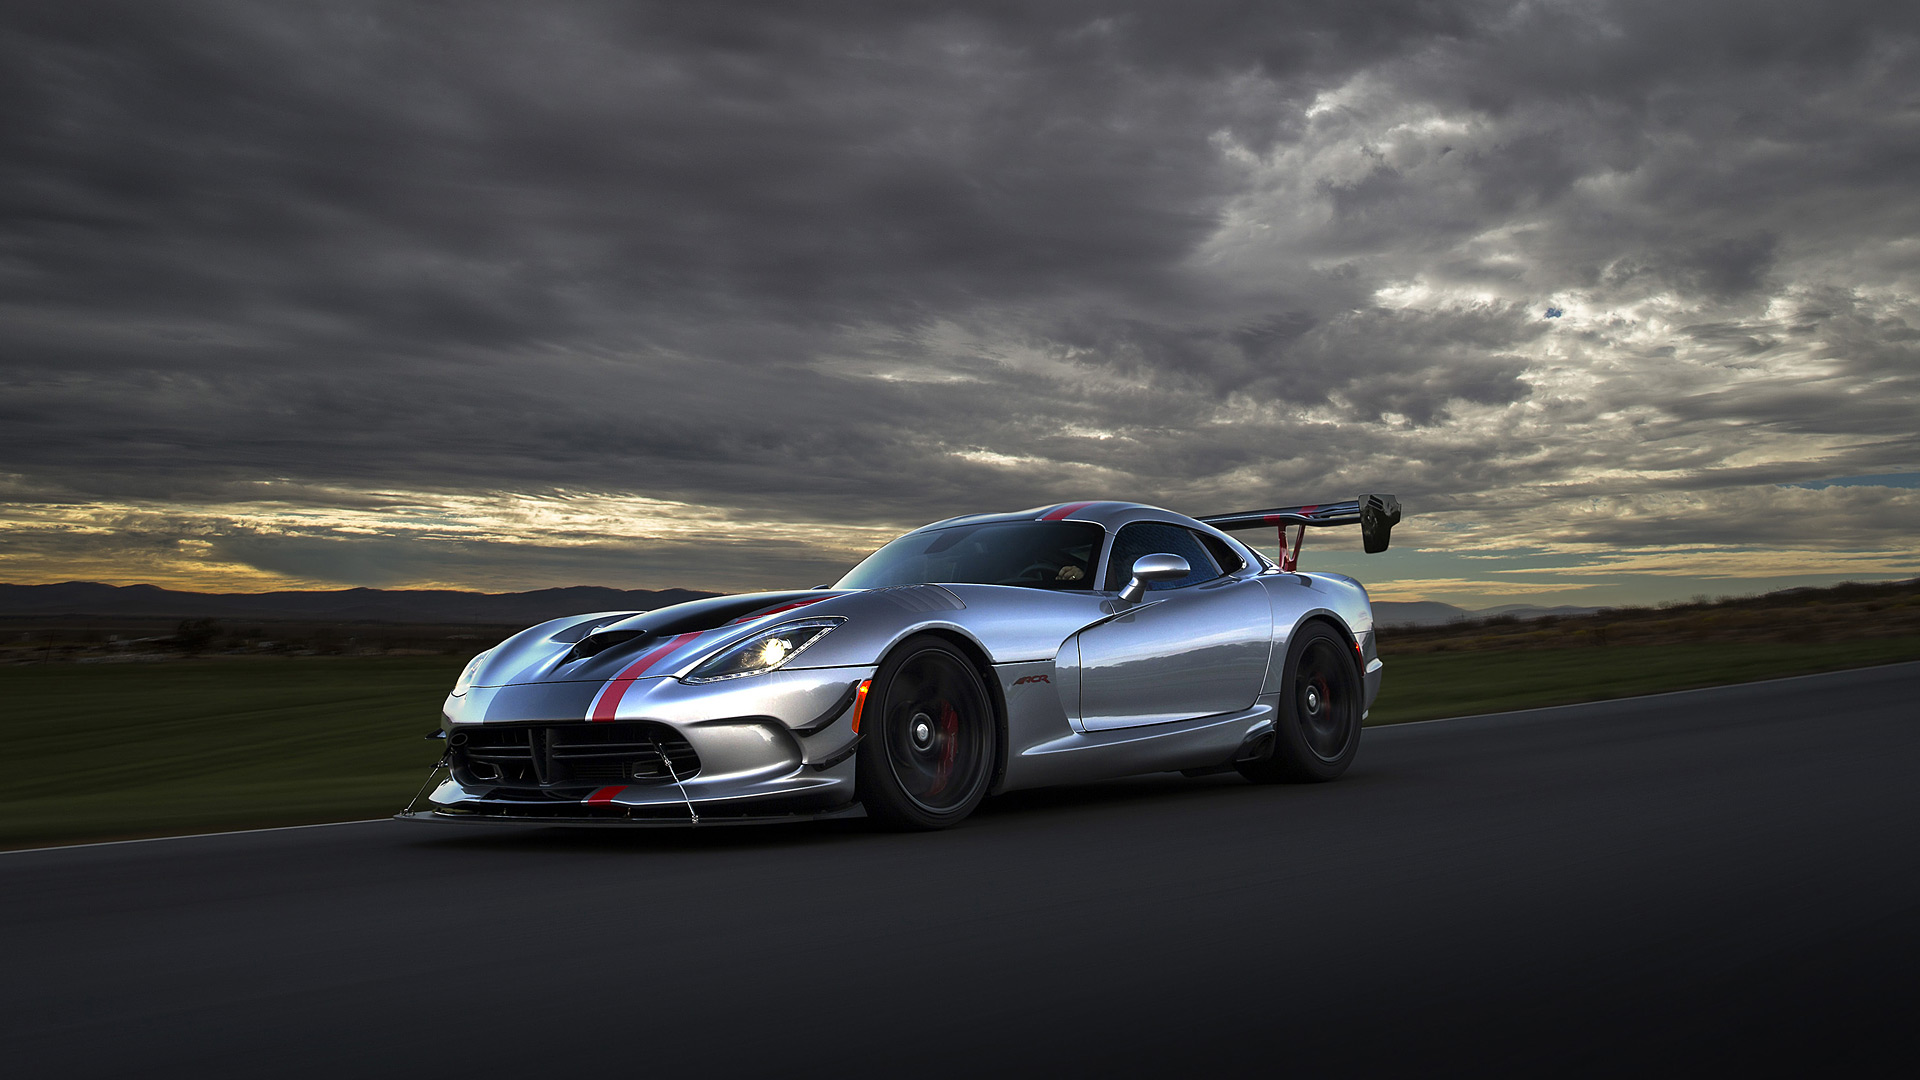 2016 Dodge Viper ACR Wallpapers HD Images   WSupercars 1920x1080